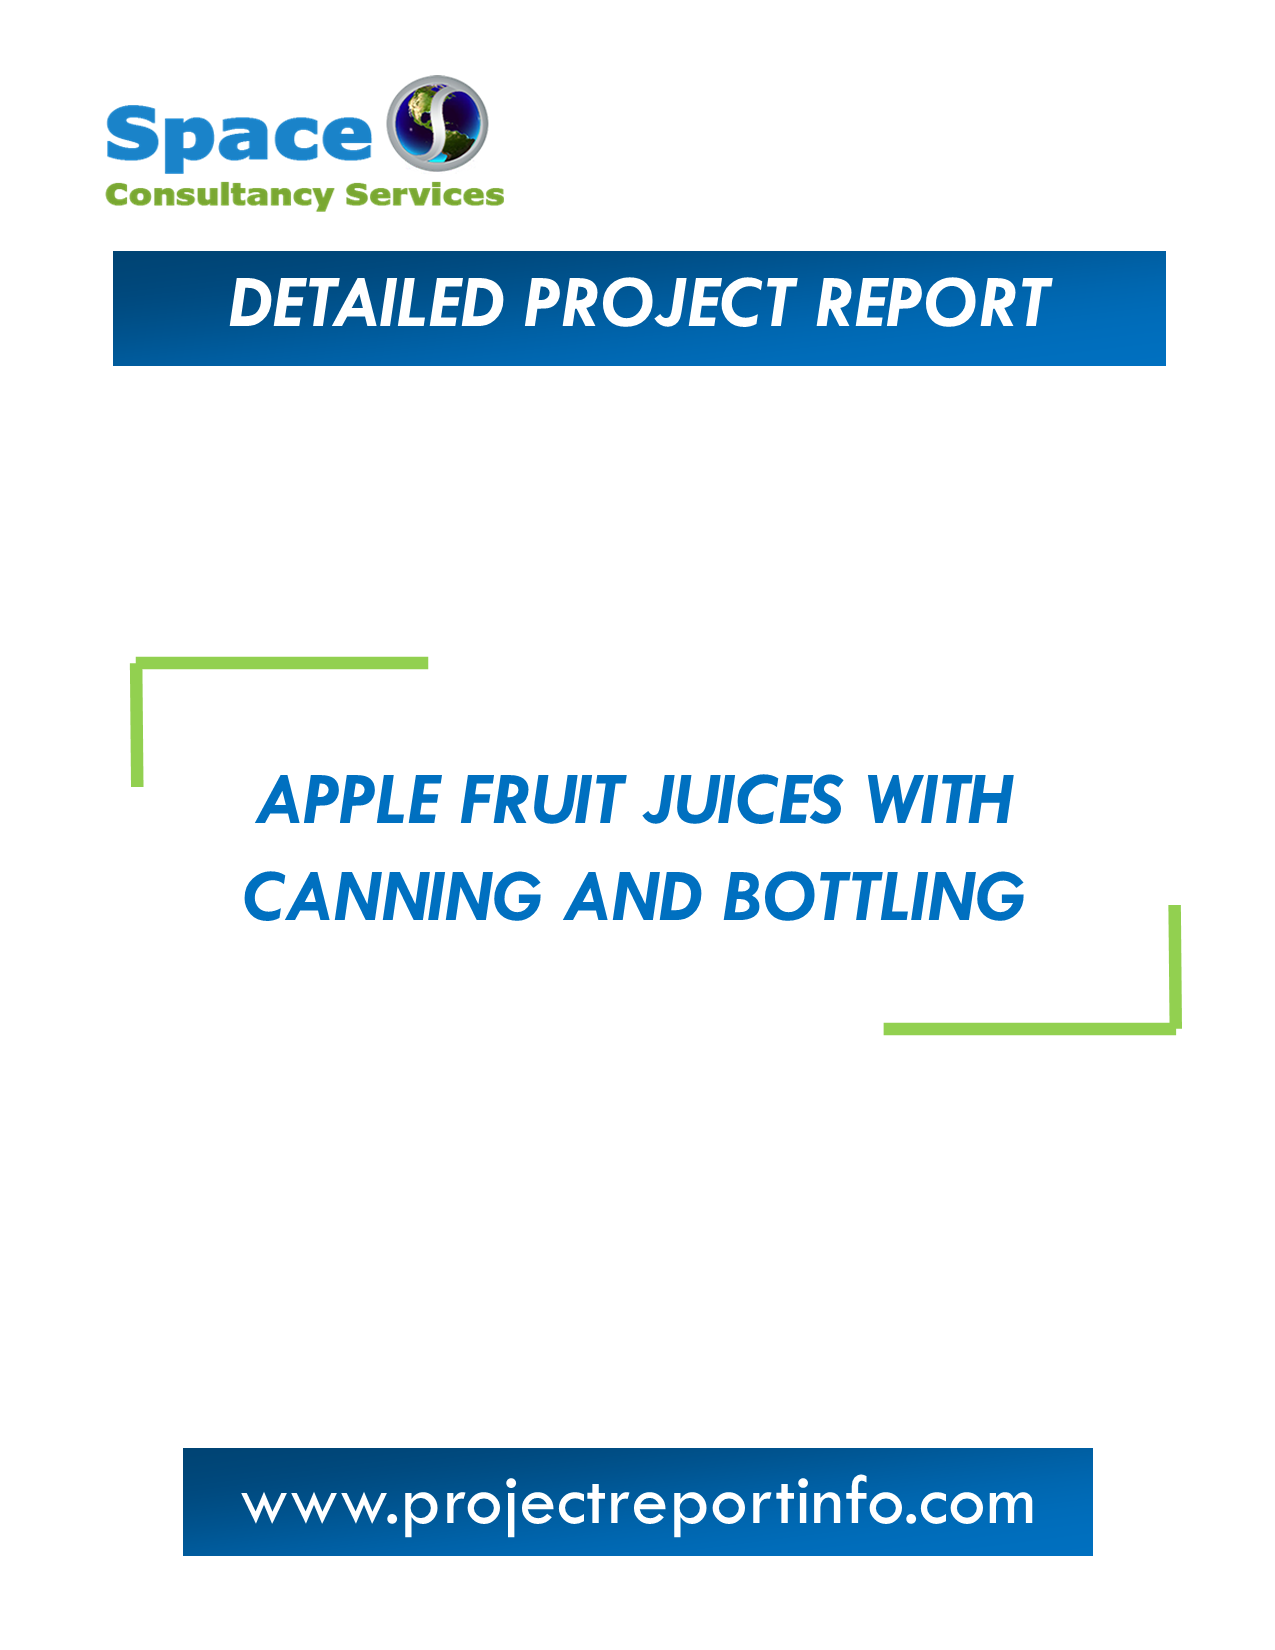 Project Report on Apple Fruit Juices with Canning and Bottling Plant